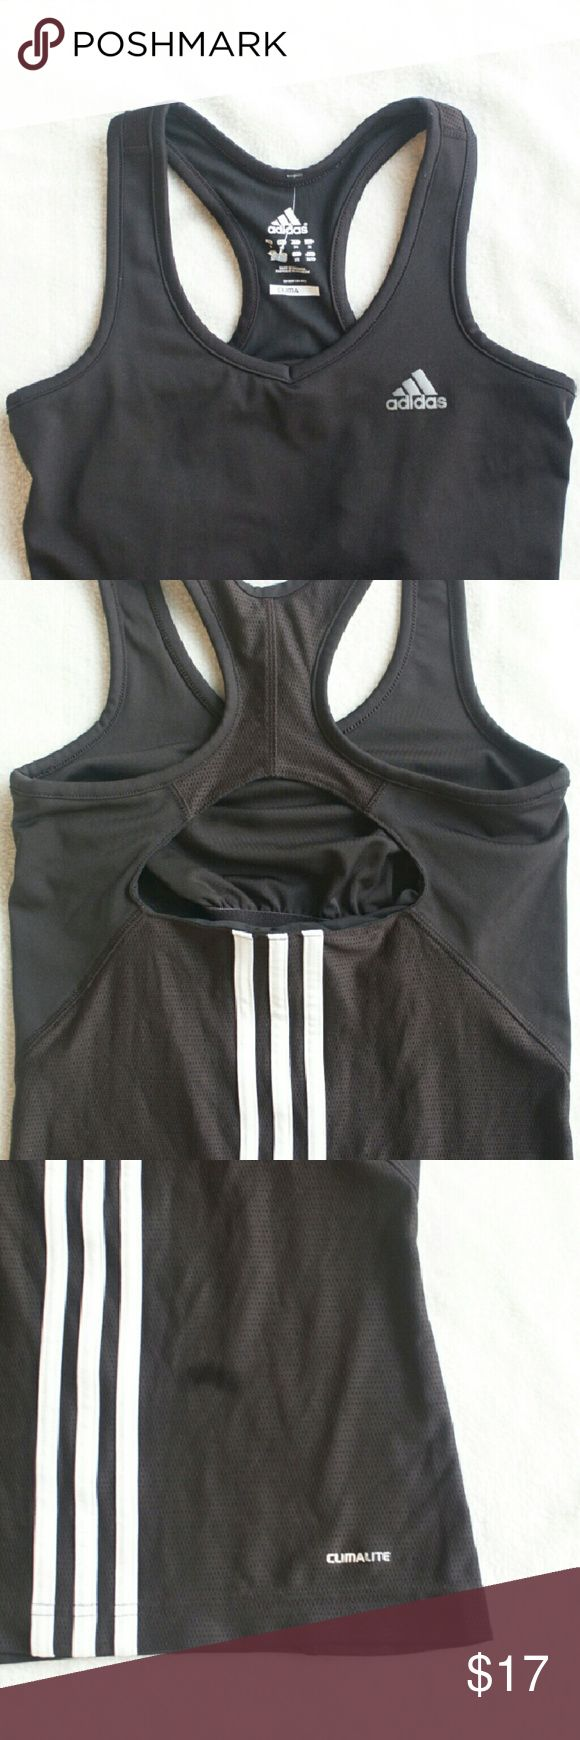 Adidas B&W Climalite Tank Tank top is in very good condition + Has Inner Bra Lining + Very Cute Cutout Back adidas Tops Tank Tops